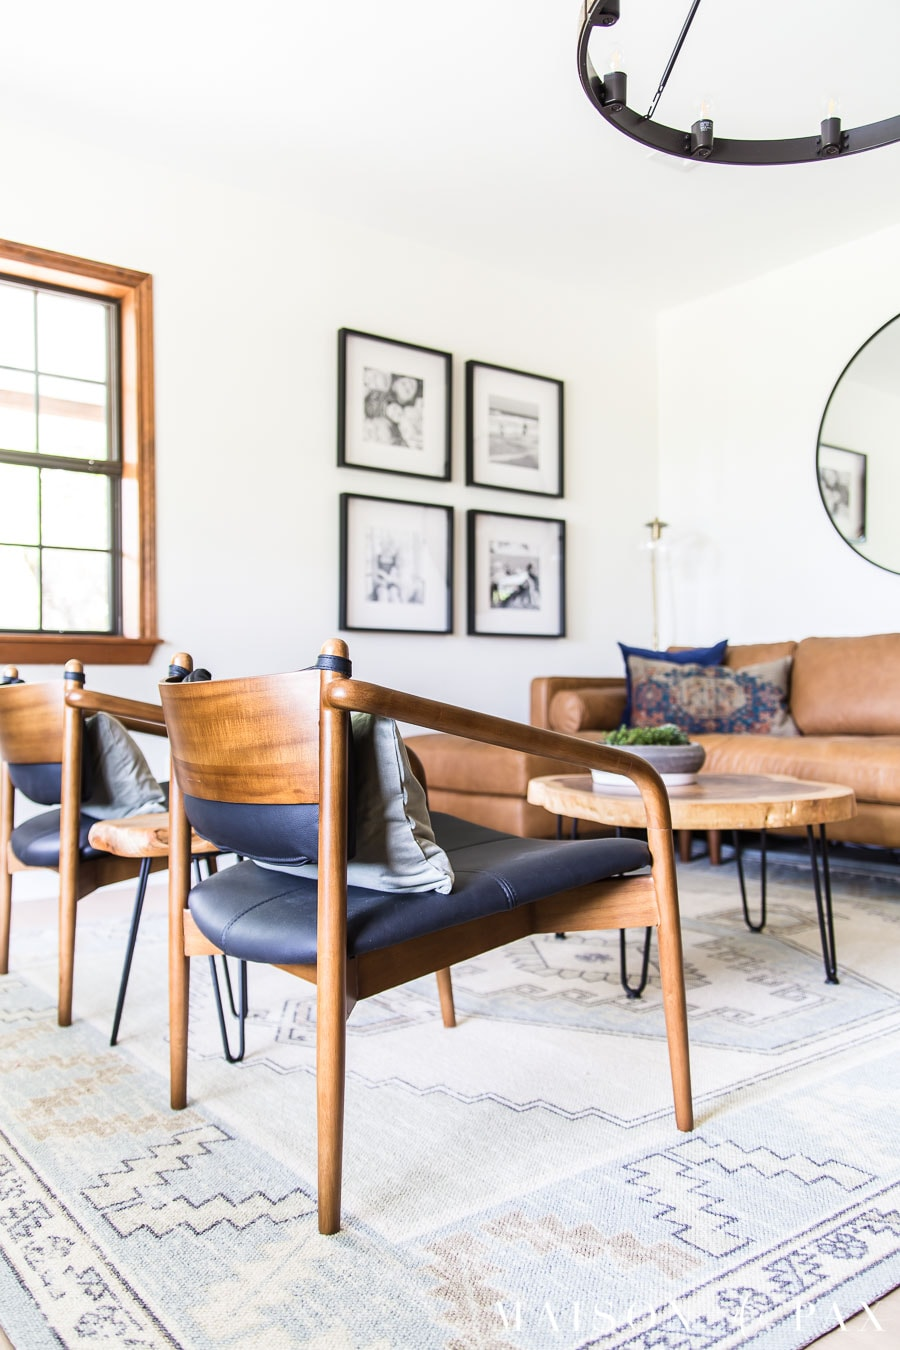 mid century modern wood and leather chairs | Maison de Pax